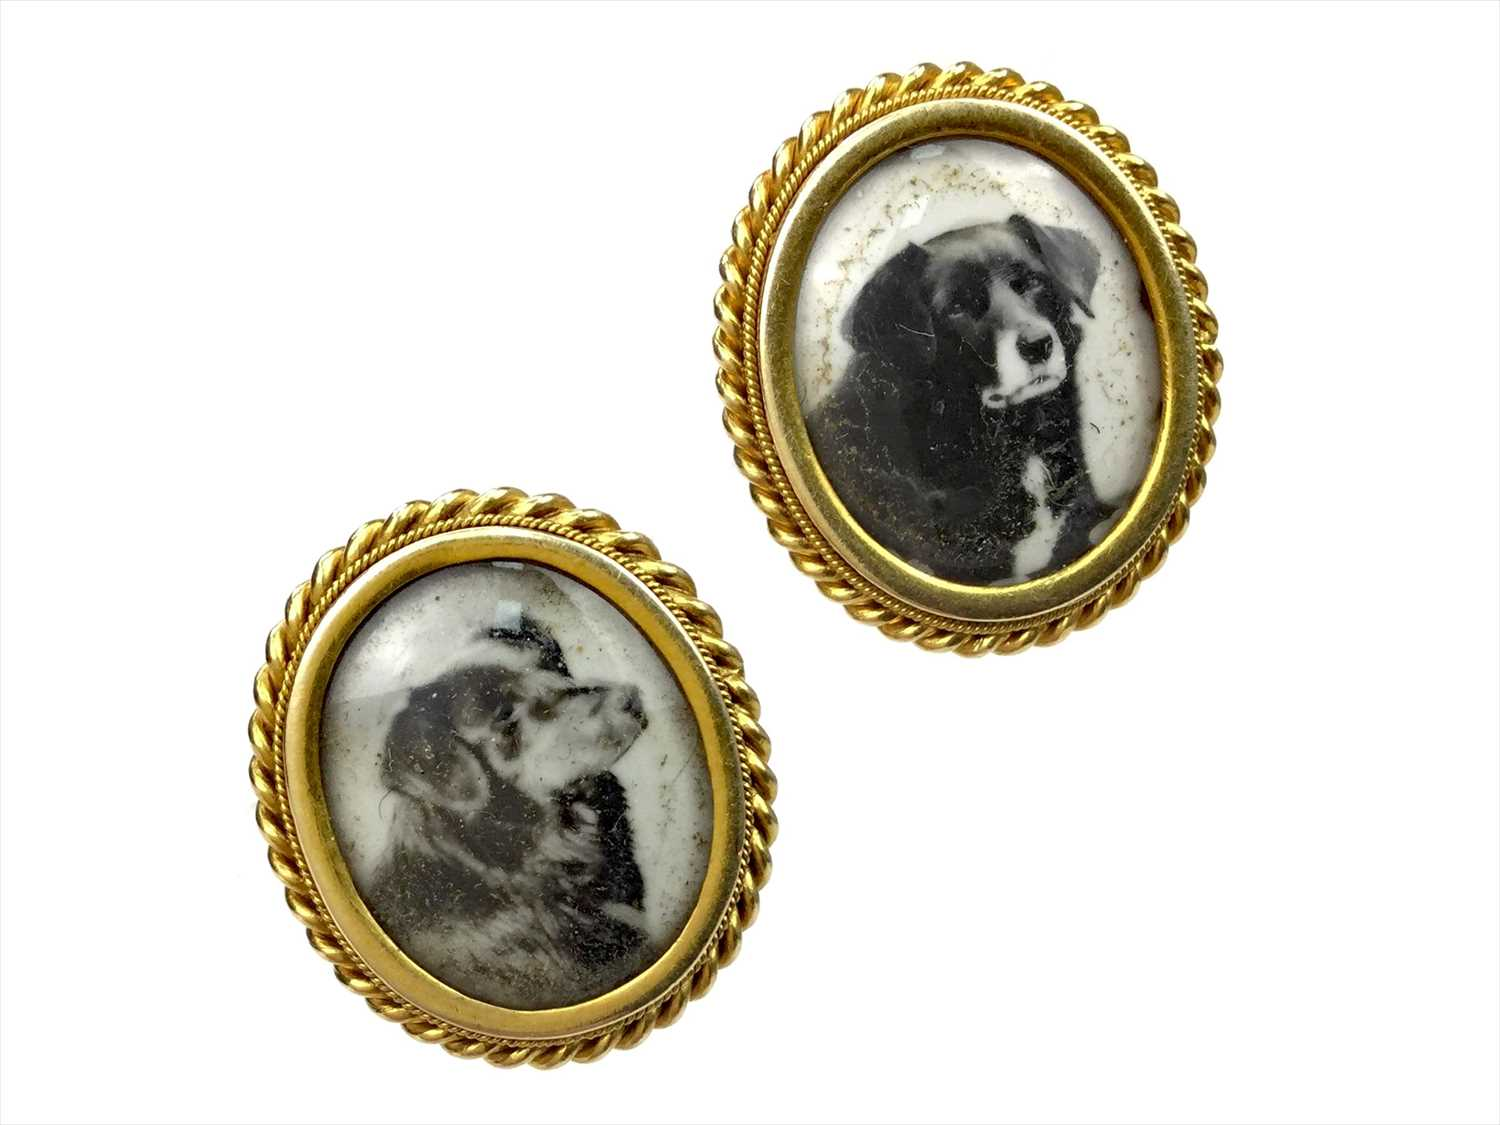 Lot 1372 - QUEEN VICTORIA INTEREST - PAIR OF MEMORIAL DRESS STUDS OF HER COLLIE DOGS